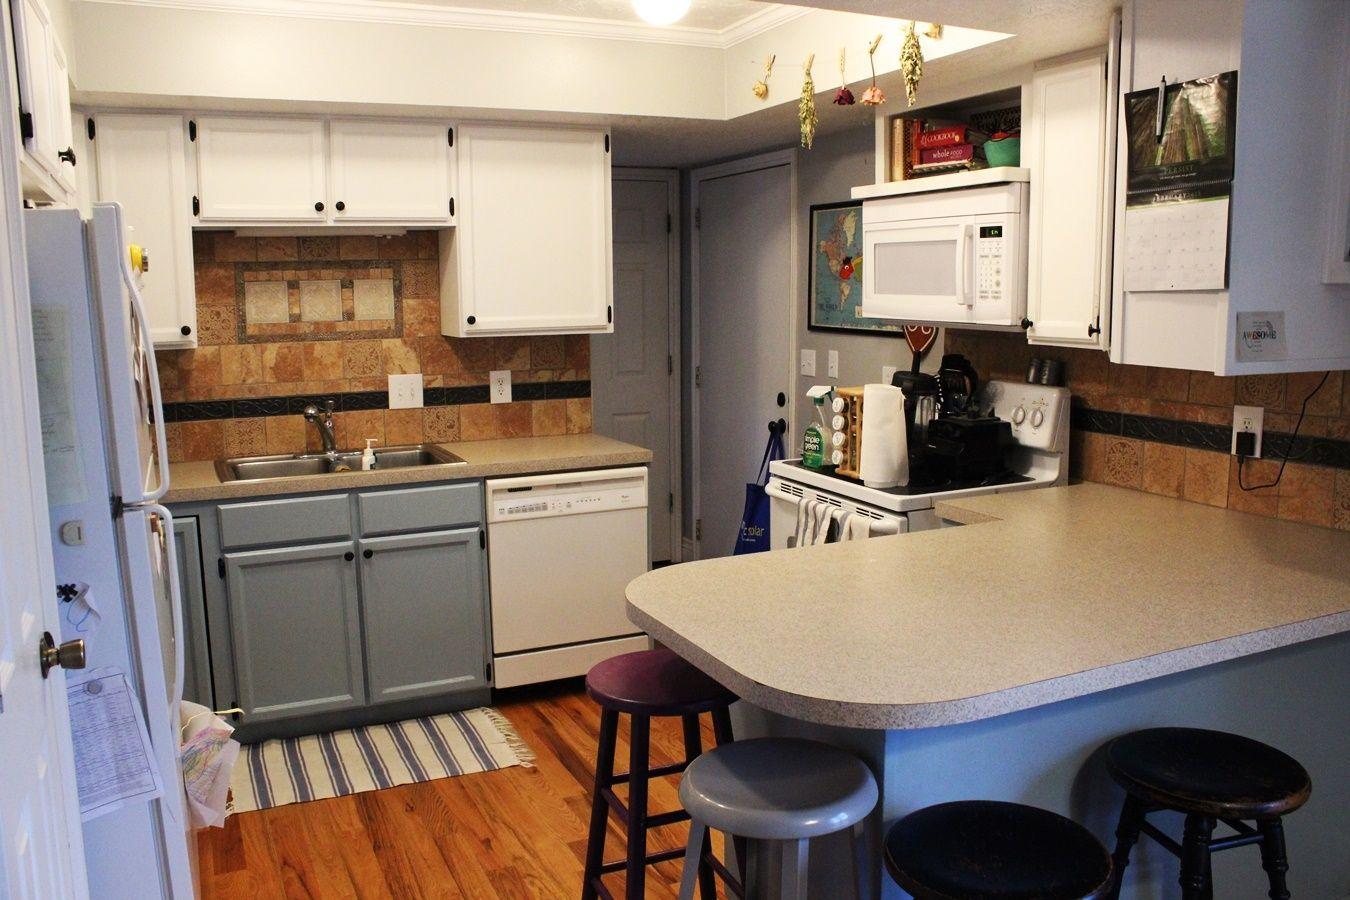 rooms for kitchens countertops design countertop hgtv small kitchen best from pictures ideas